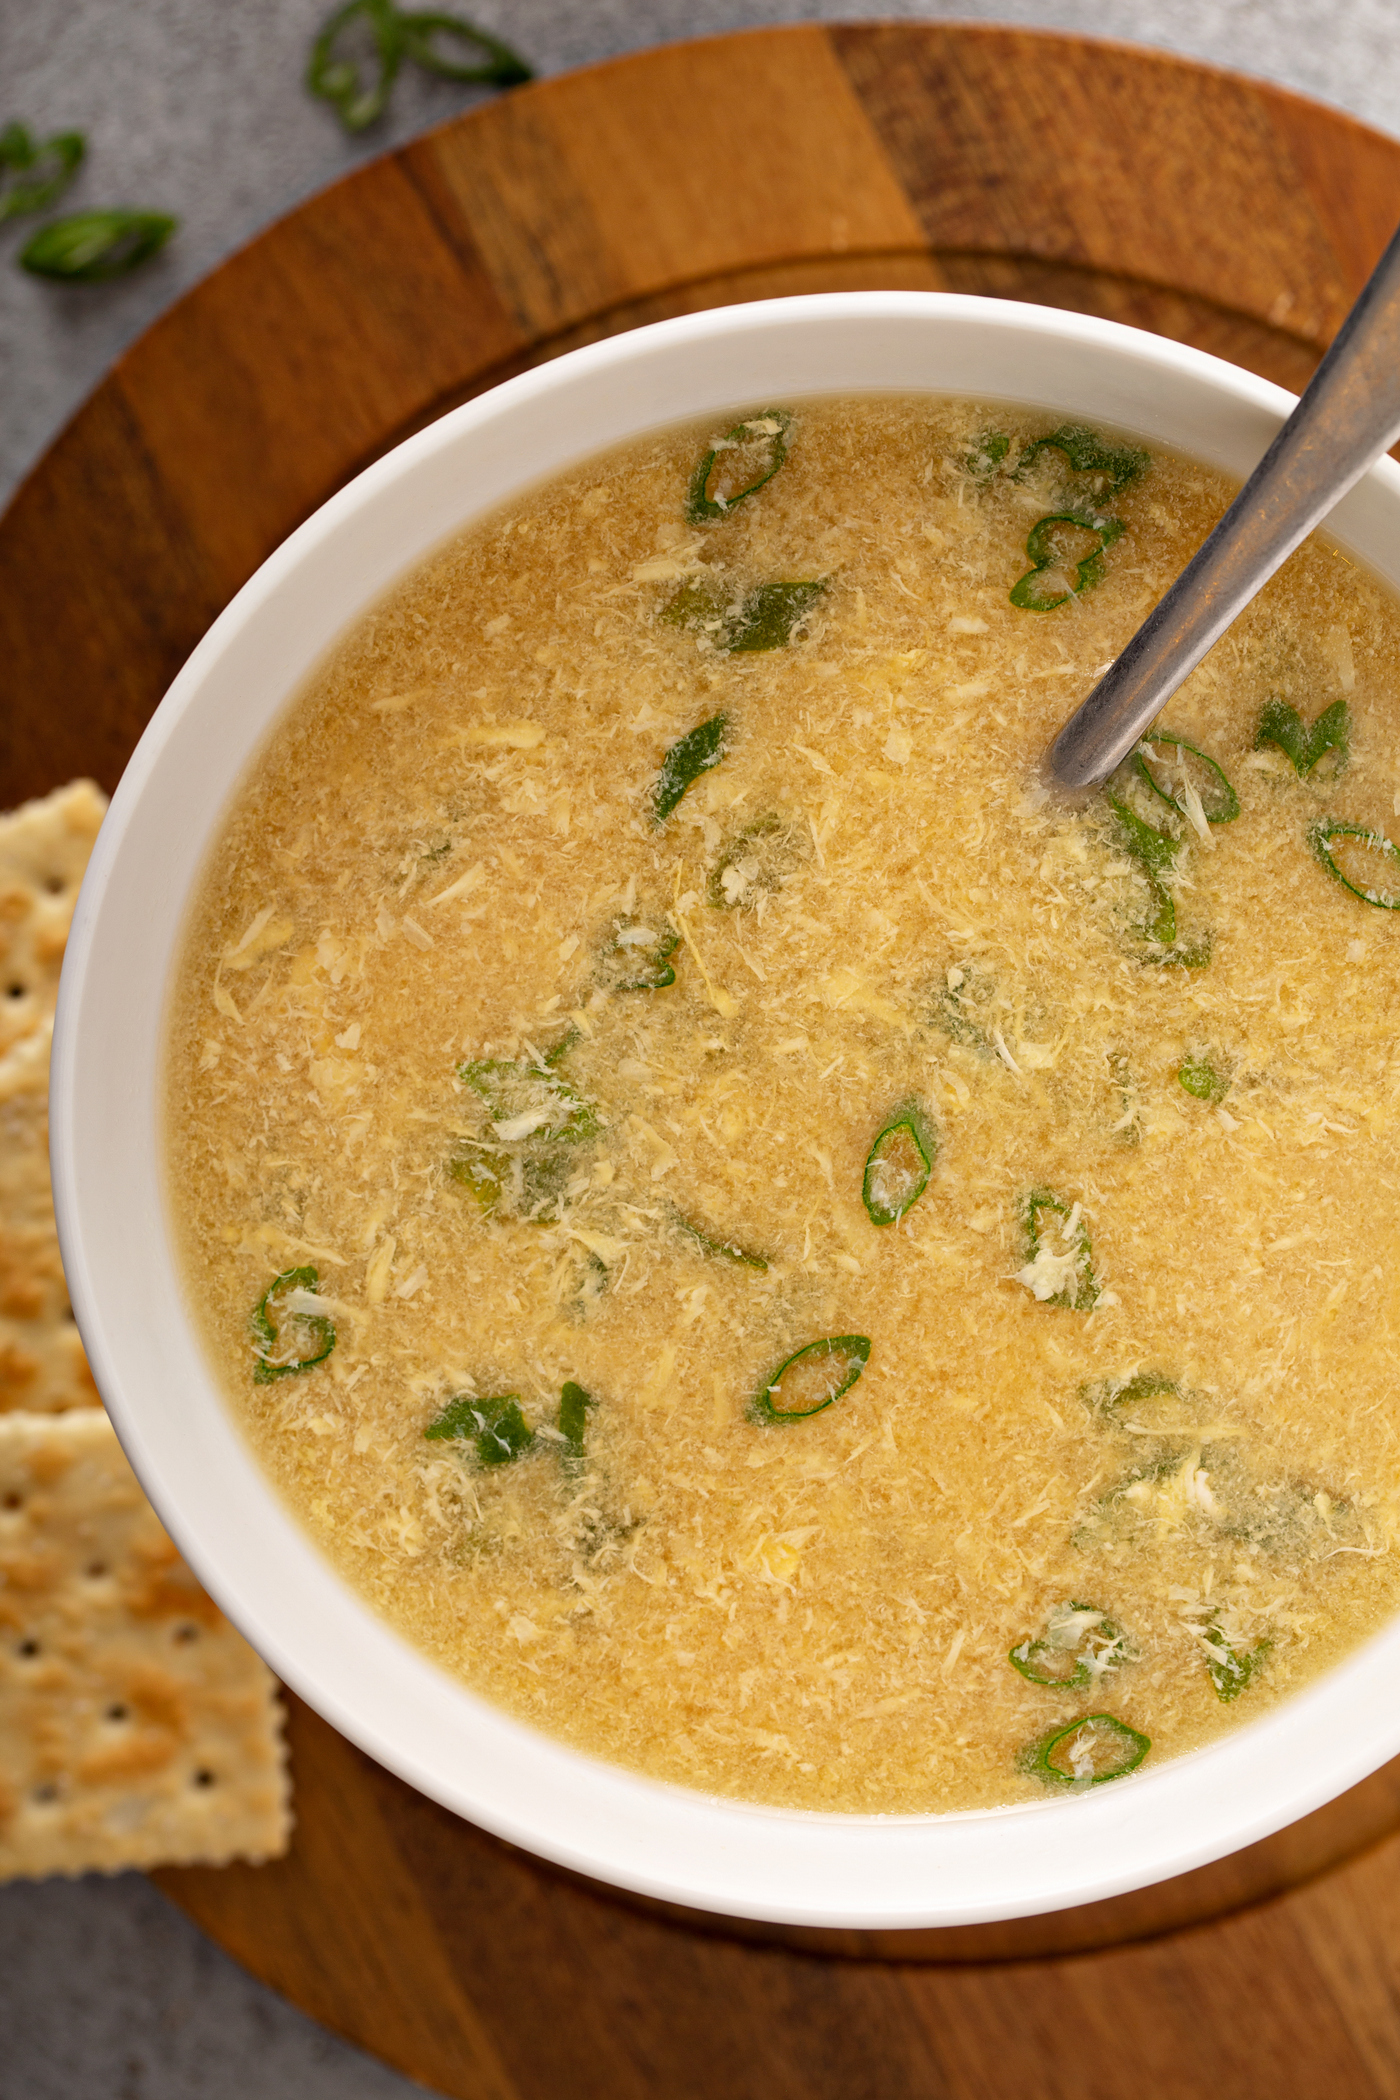 A close-up of a bowl of egg drop soup with sliced onions on top and saltine crackers in the background.